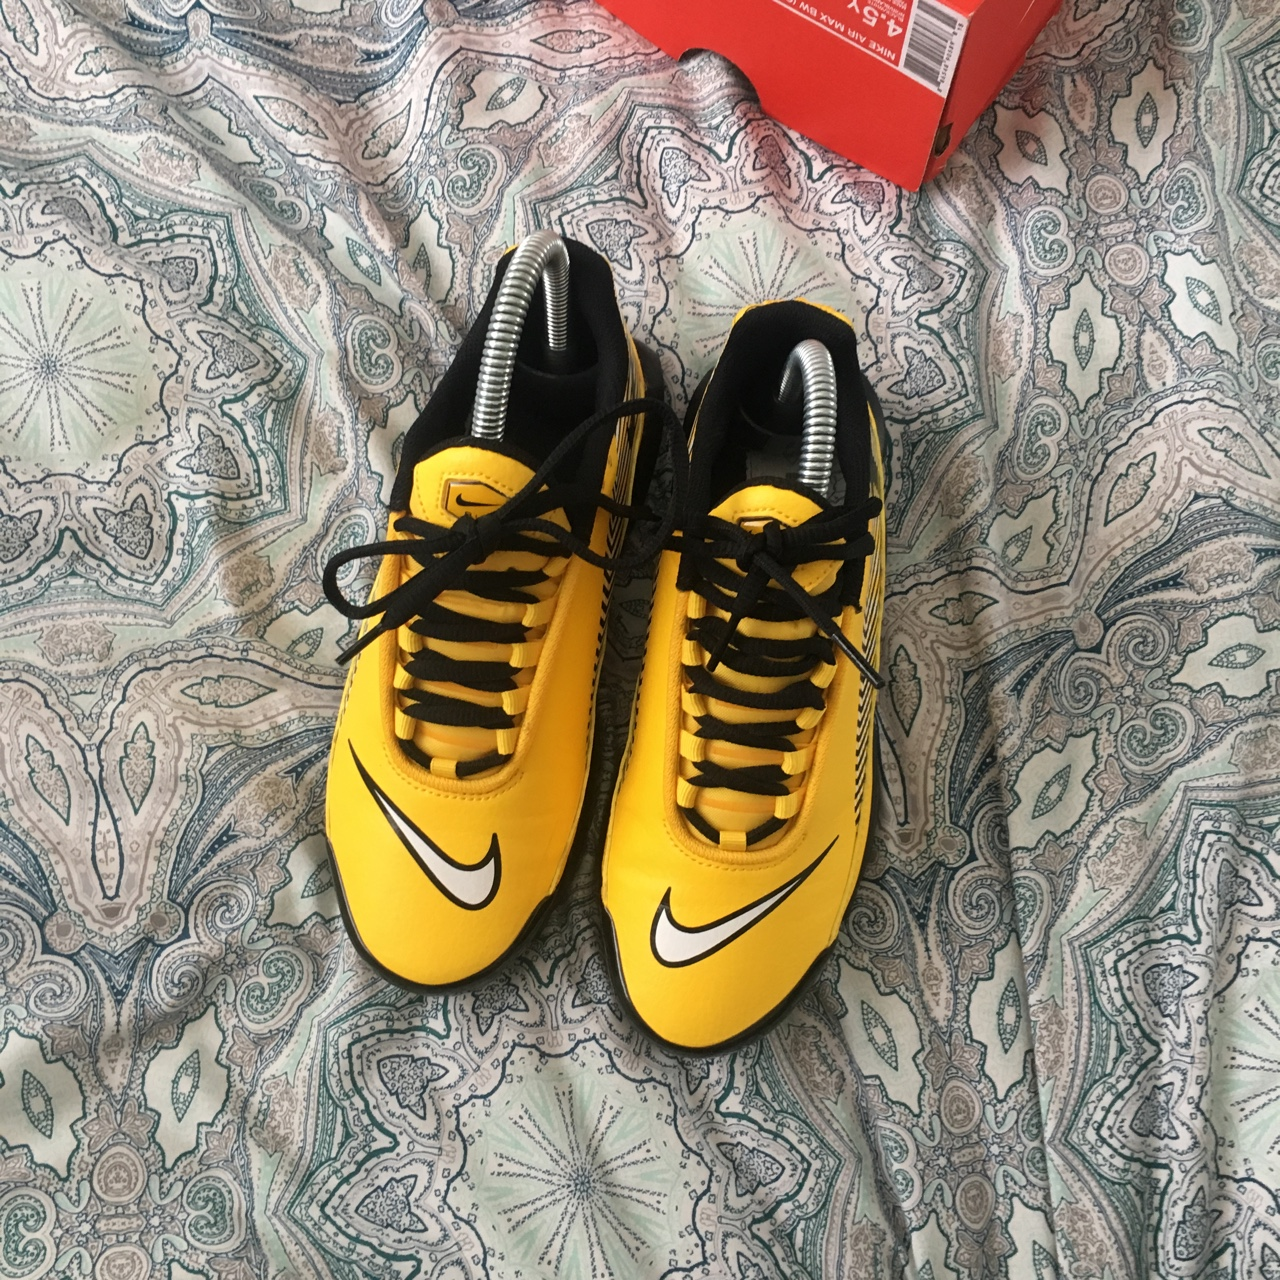 size 40 45c7a 020f5 Nike Tuned 1 Mercurial Yellow and Black, only worn a... - Depop